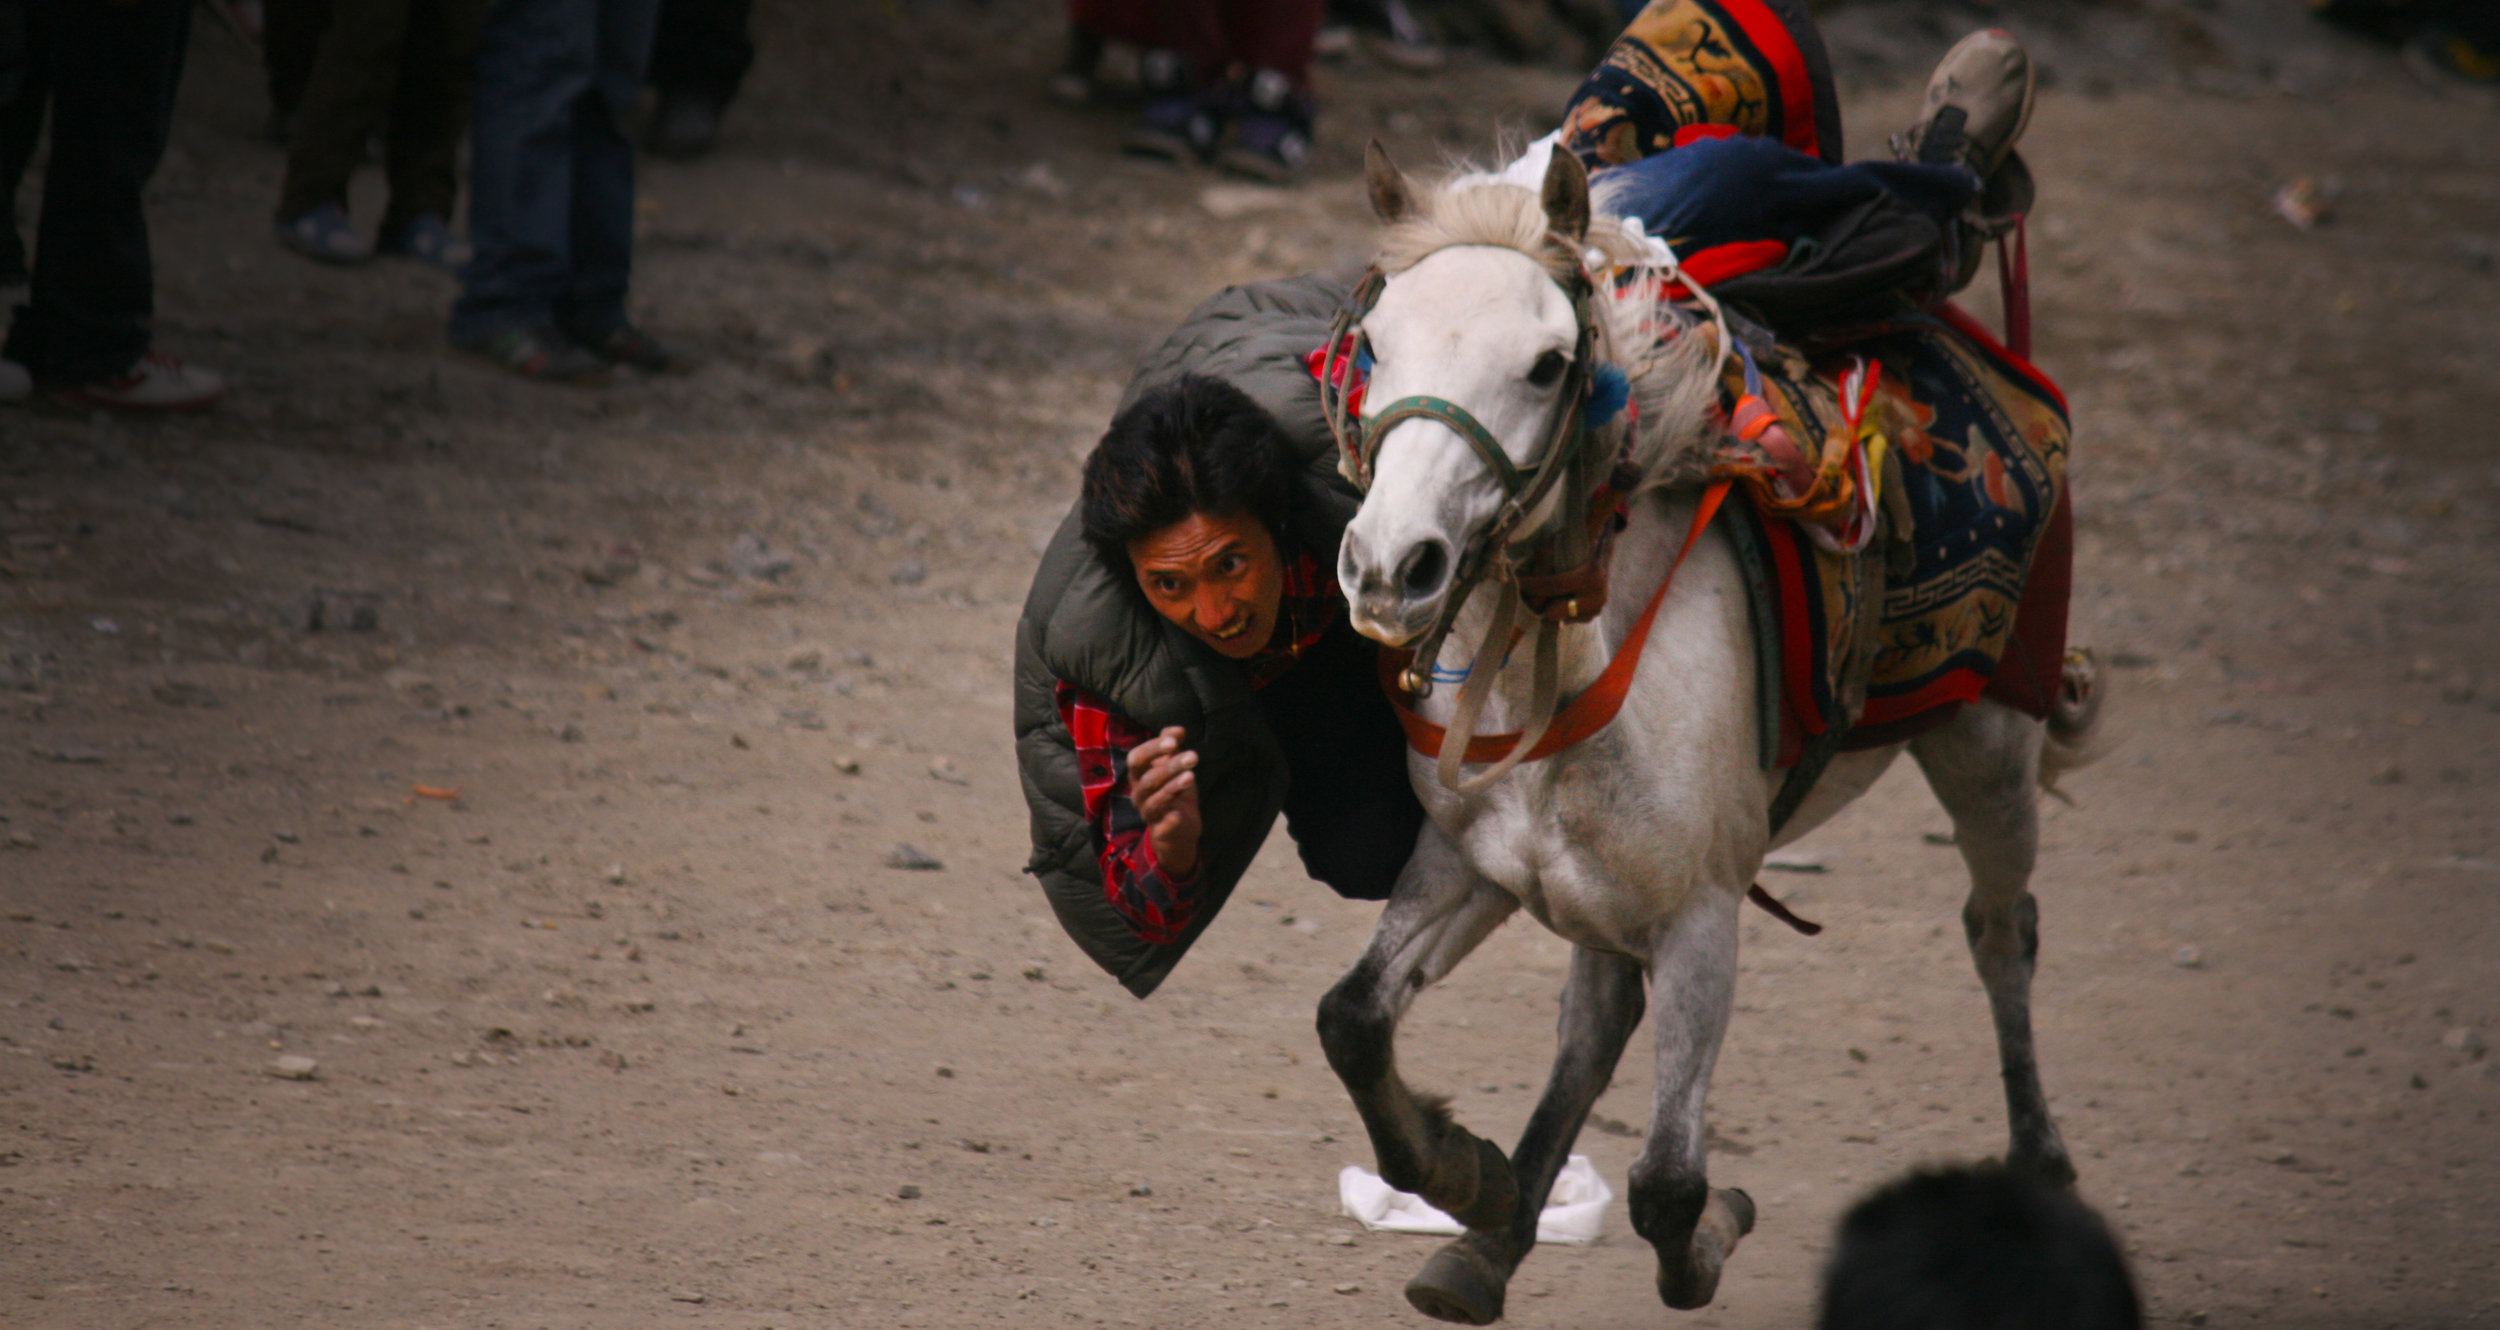 A young rider and his well balanced horse compete in a daring race in Mustang. Photo: Rajan Kathet